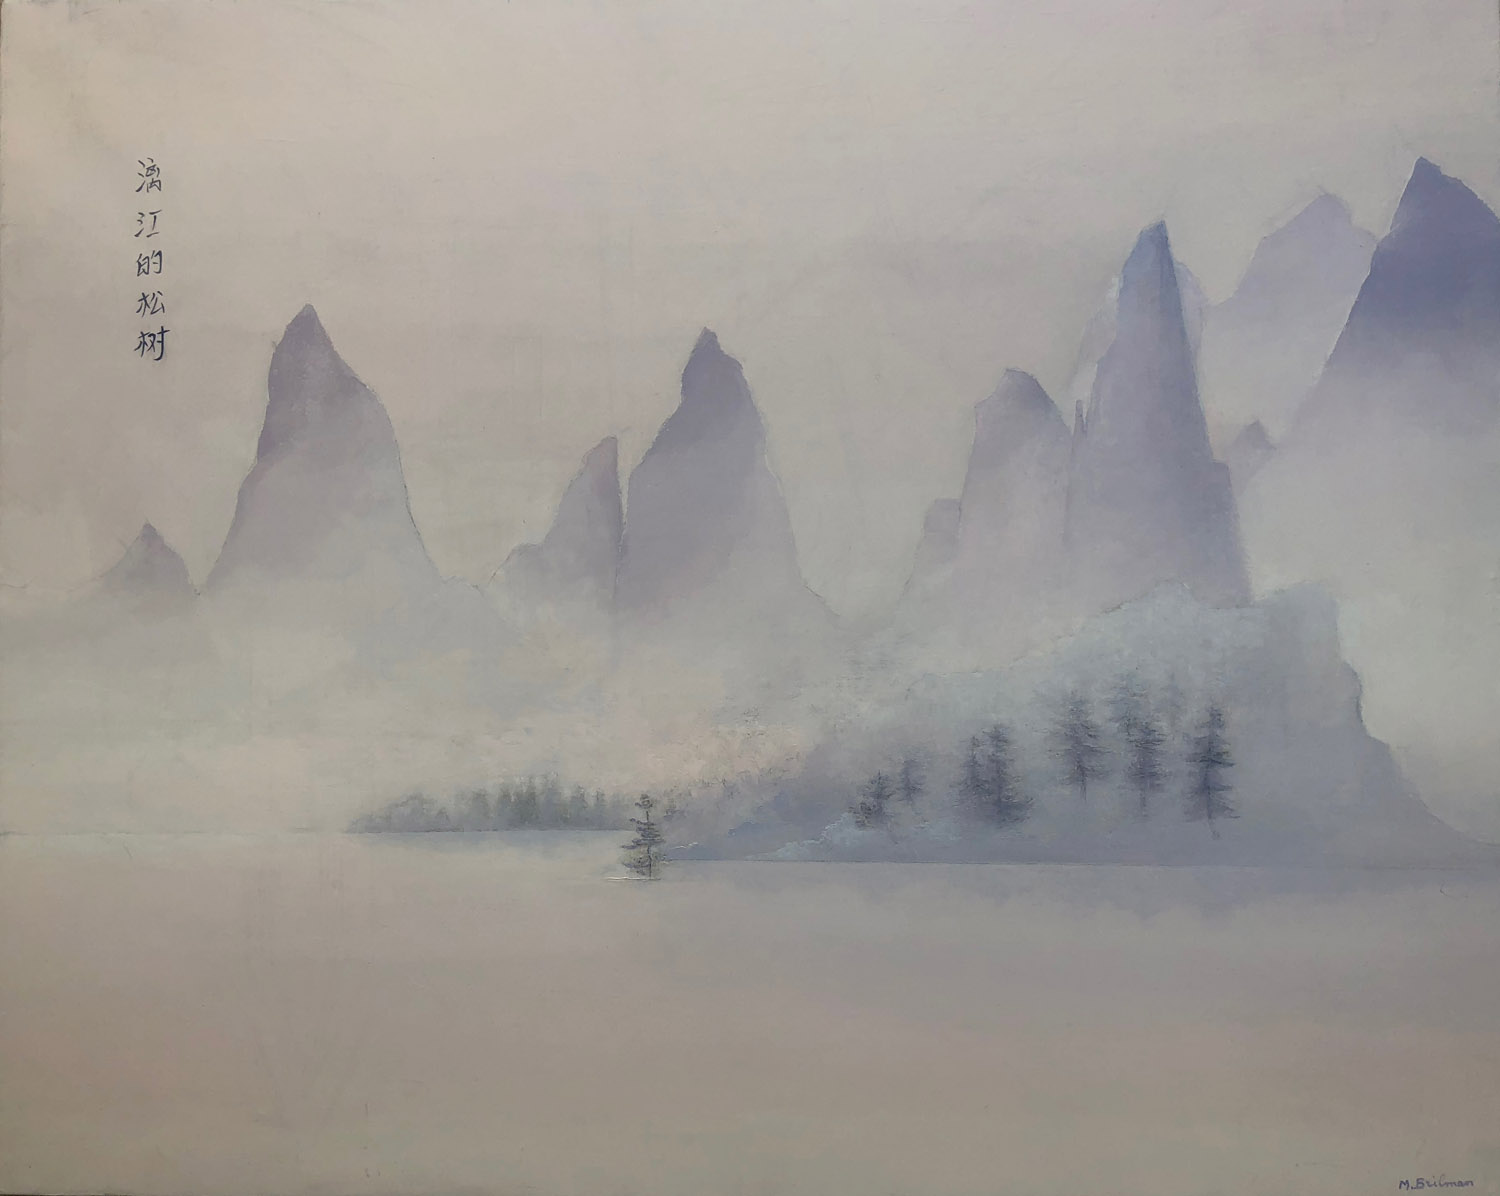 Pine trees of the Li River